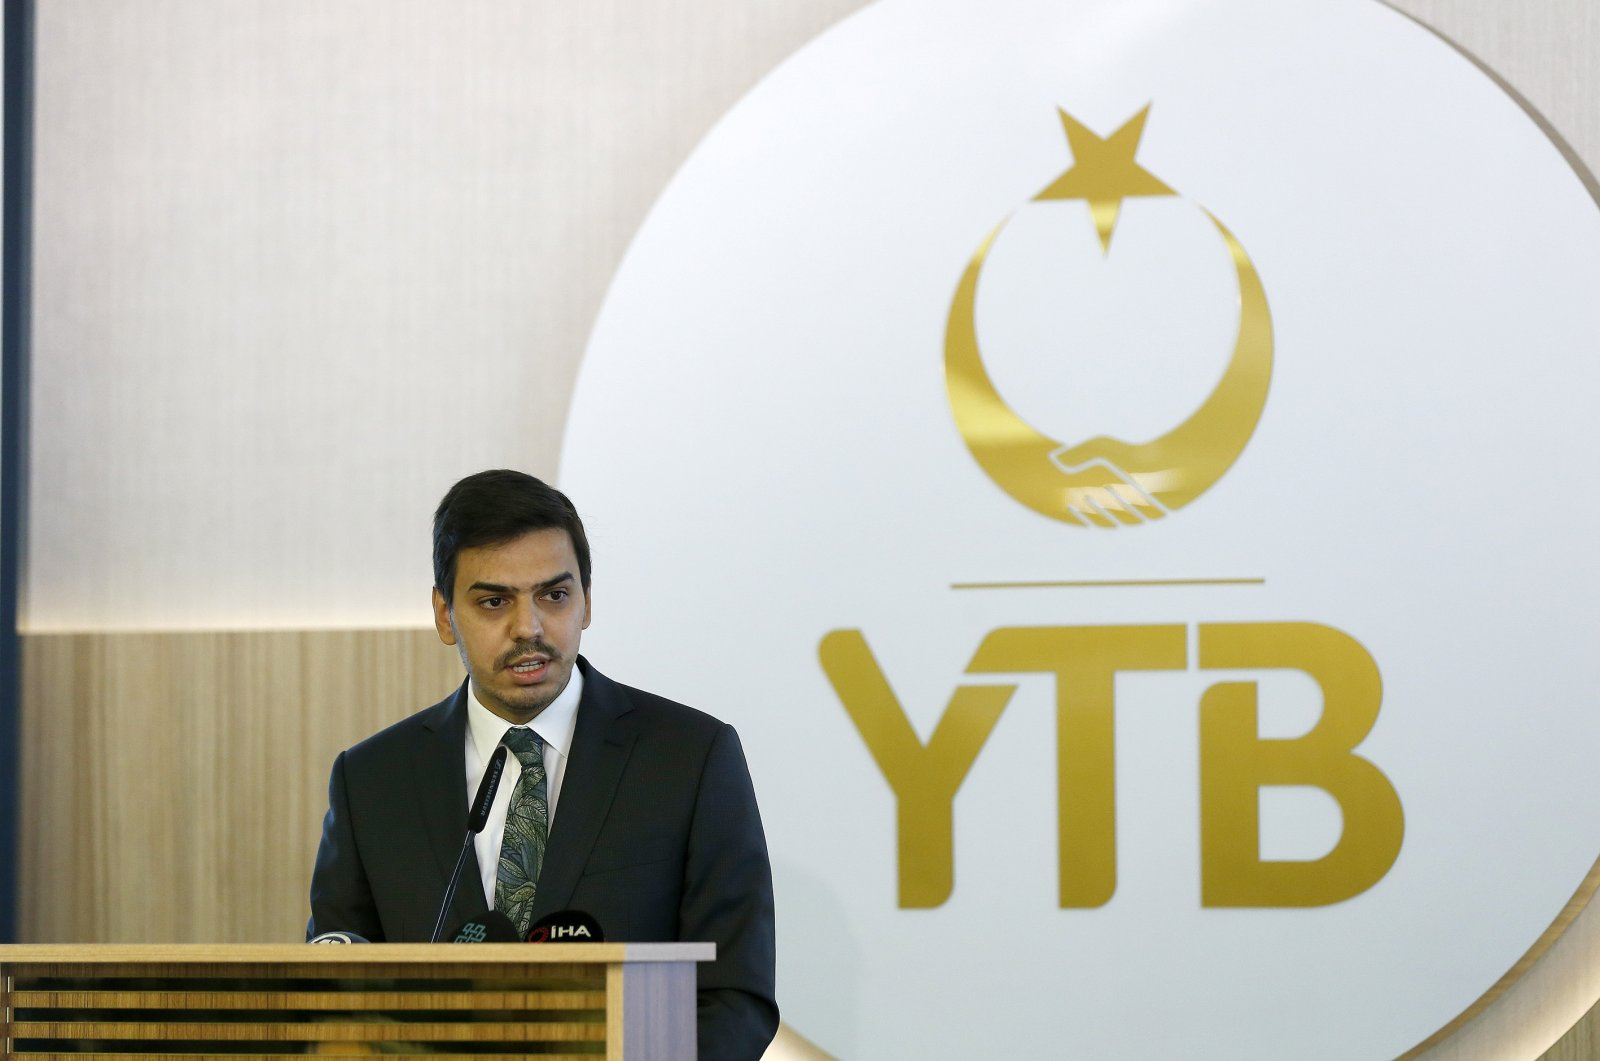 YTB President Abdullah Eren speaks at an event in the capital Ankara, Turkey, Sept. 22, 2020. (AA Photo)